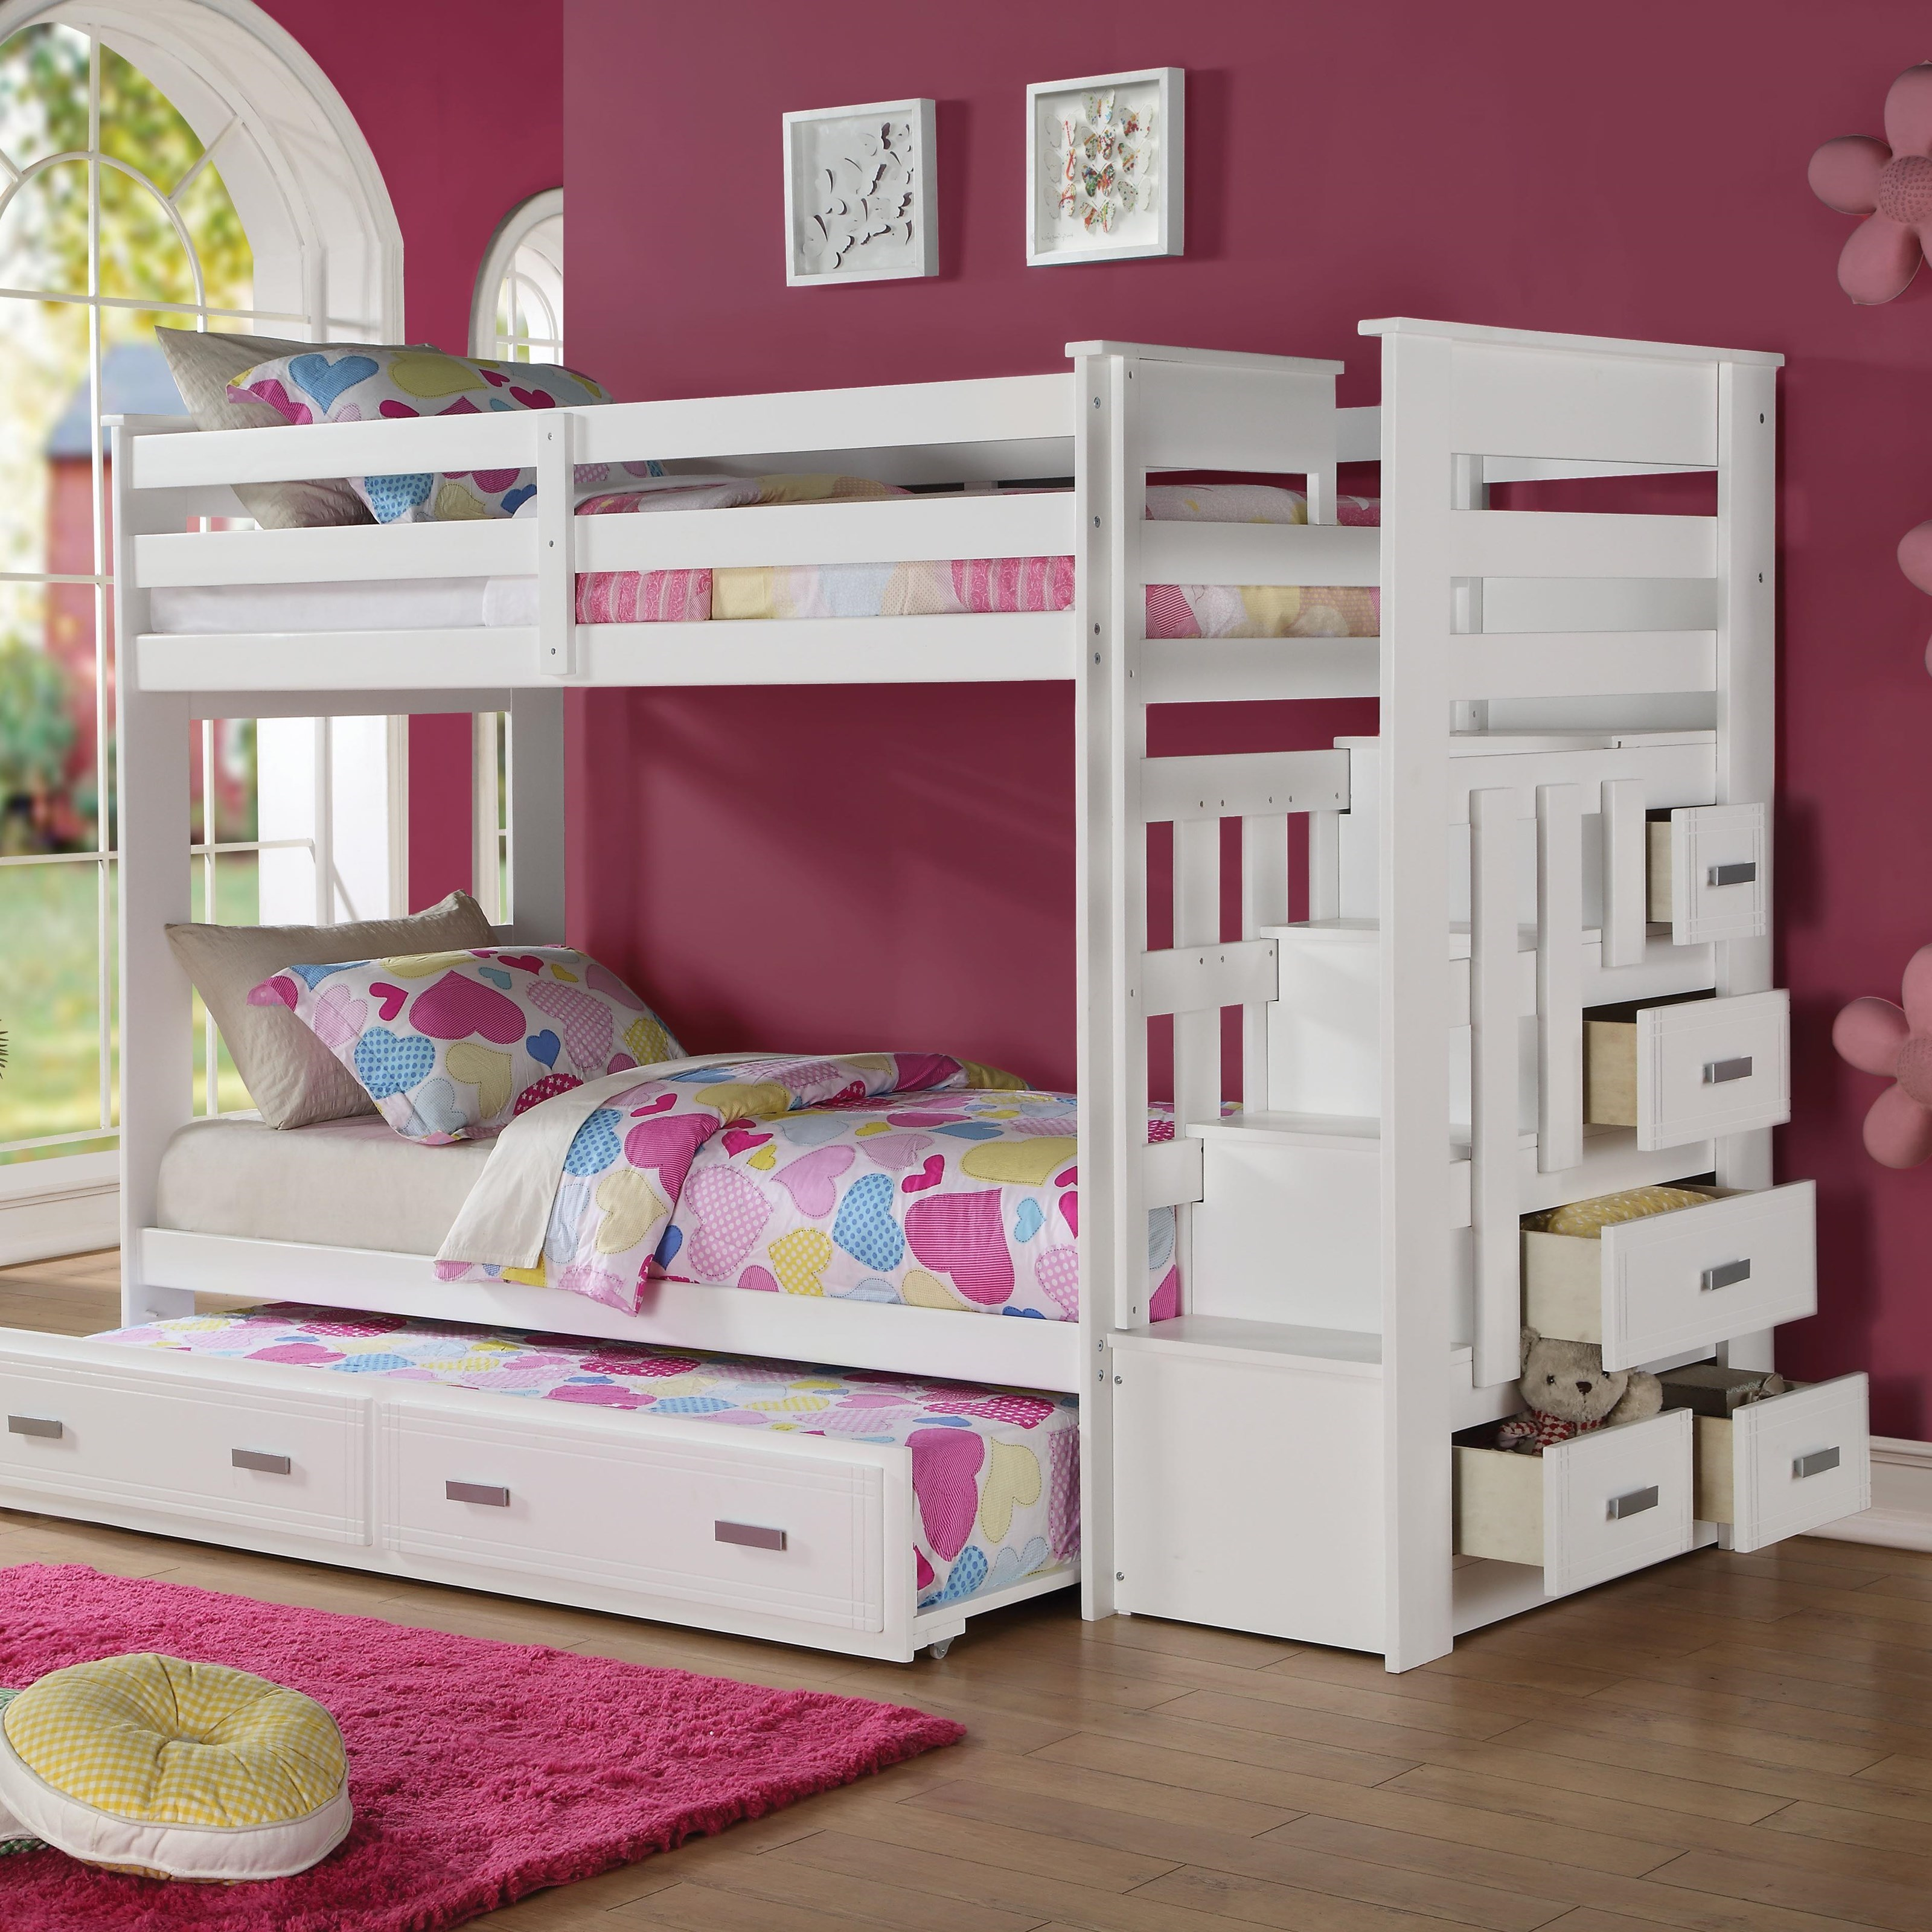 Allentown Storage Bunkbed with Trundle by Acme Furniture at Carolina Direct